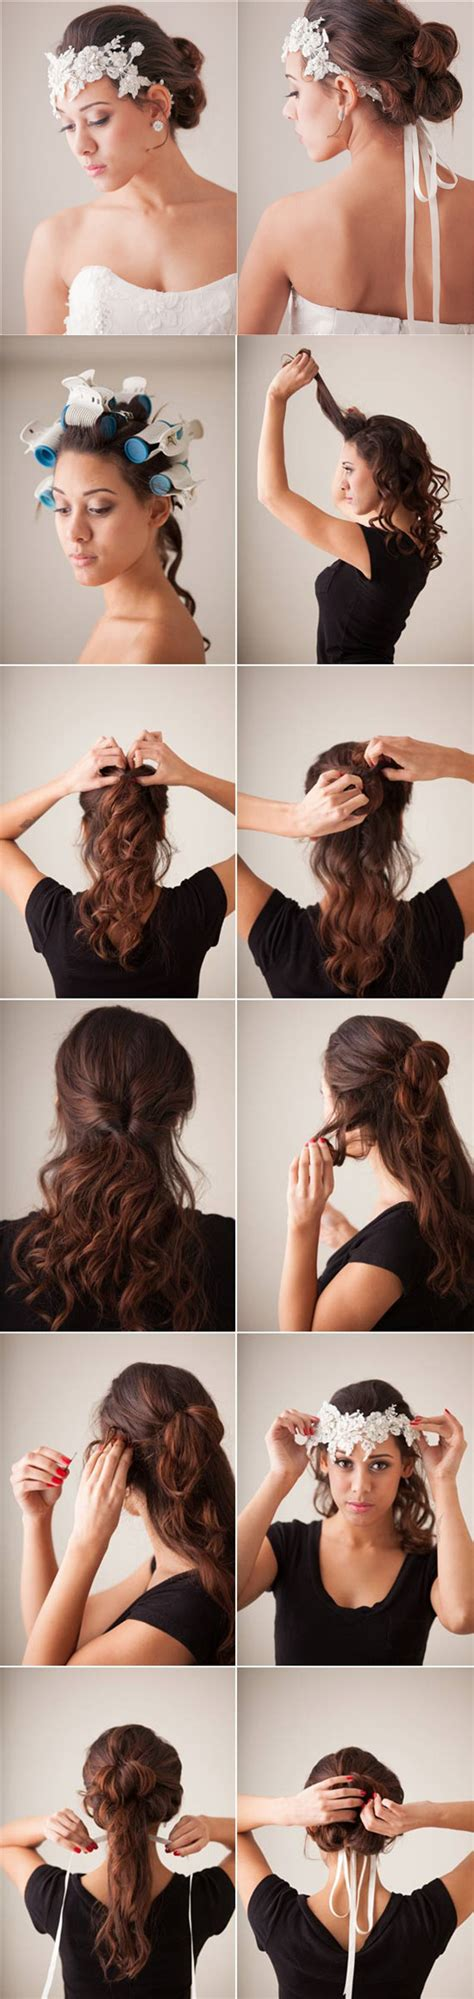 hairstyles with extensions tutorial real best 6 wedding hairstyle tutorial with 20 inch hair